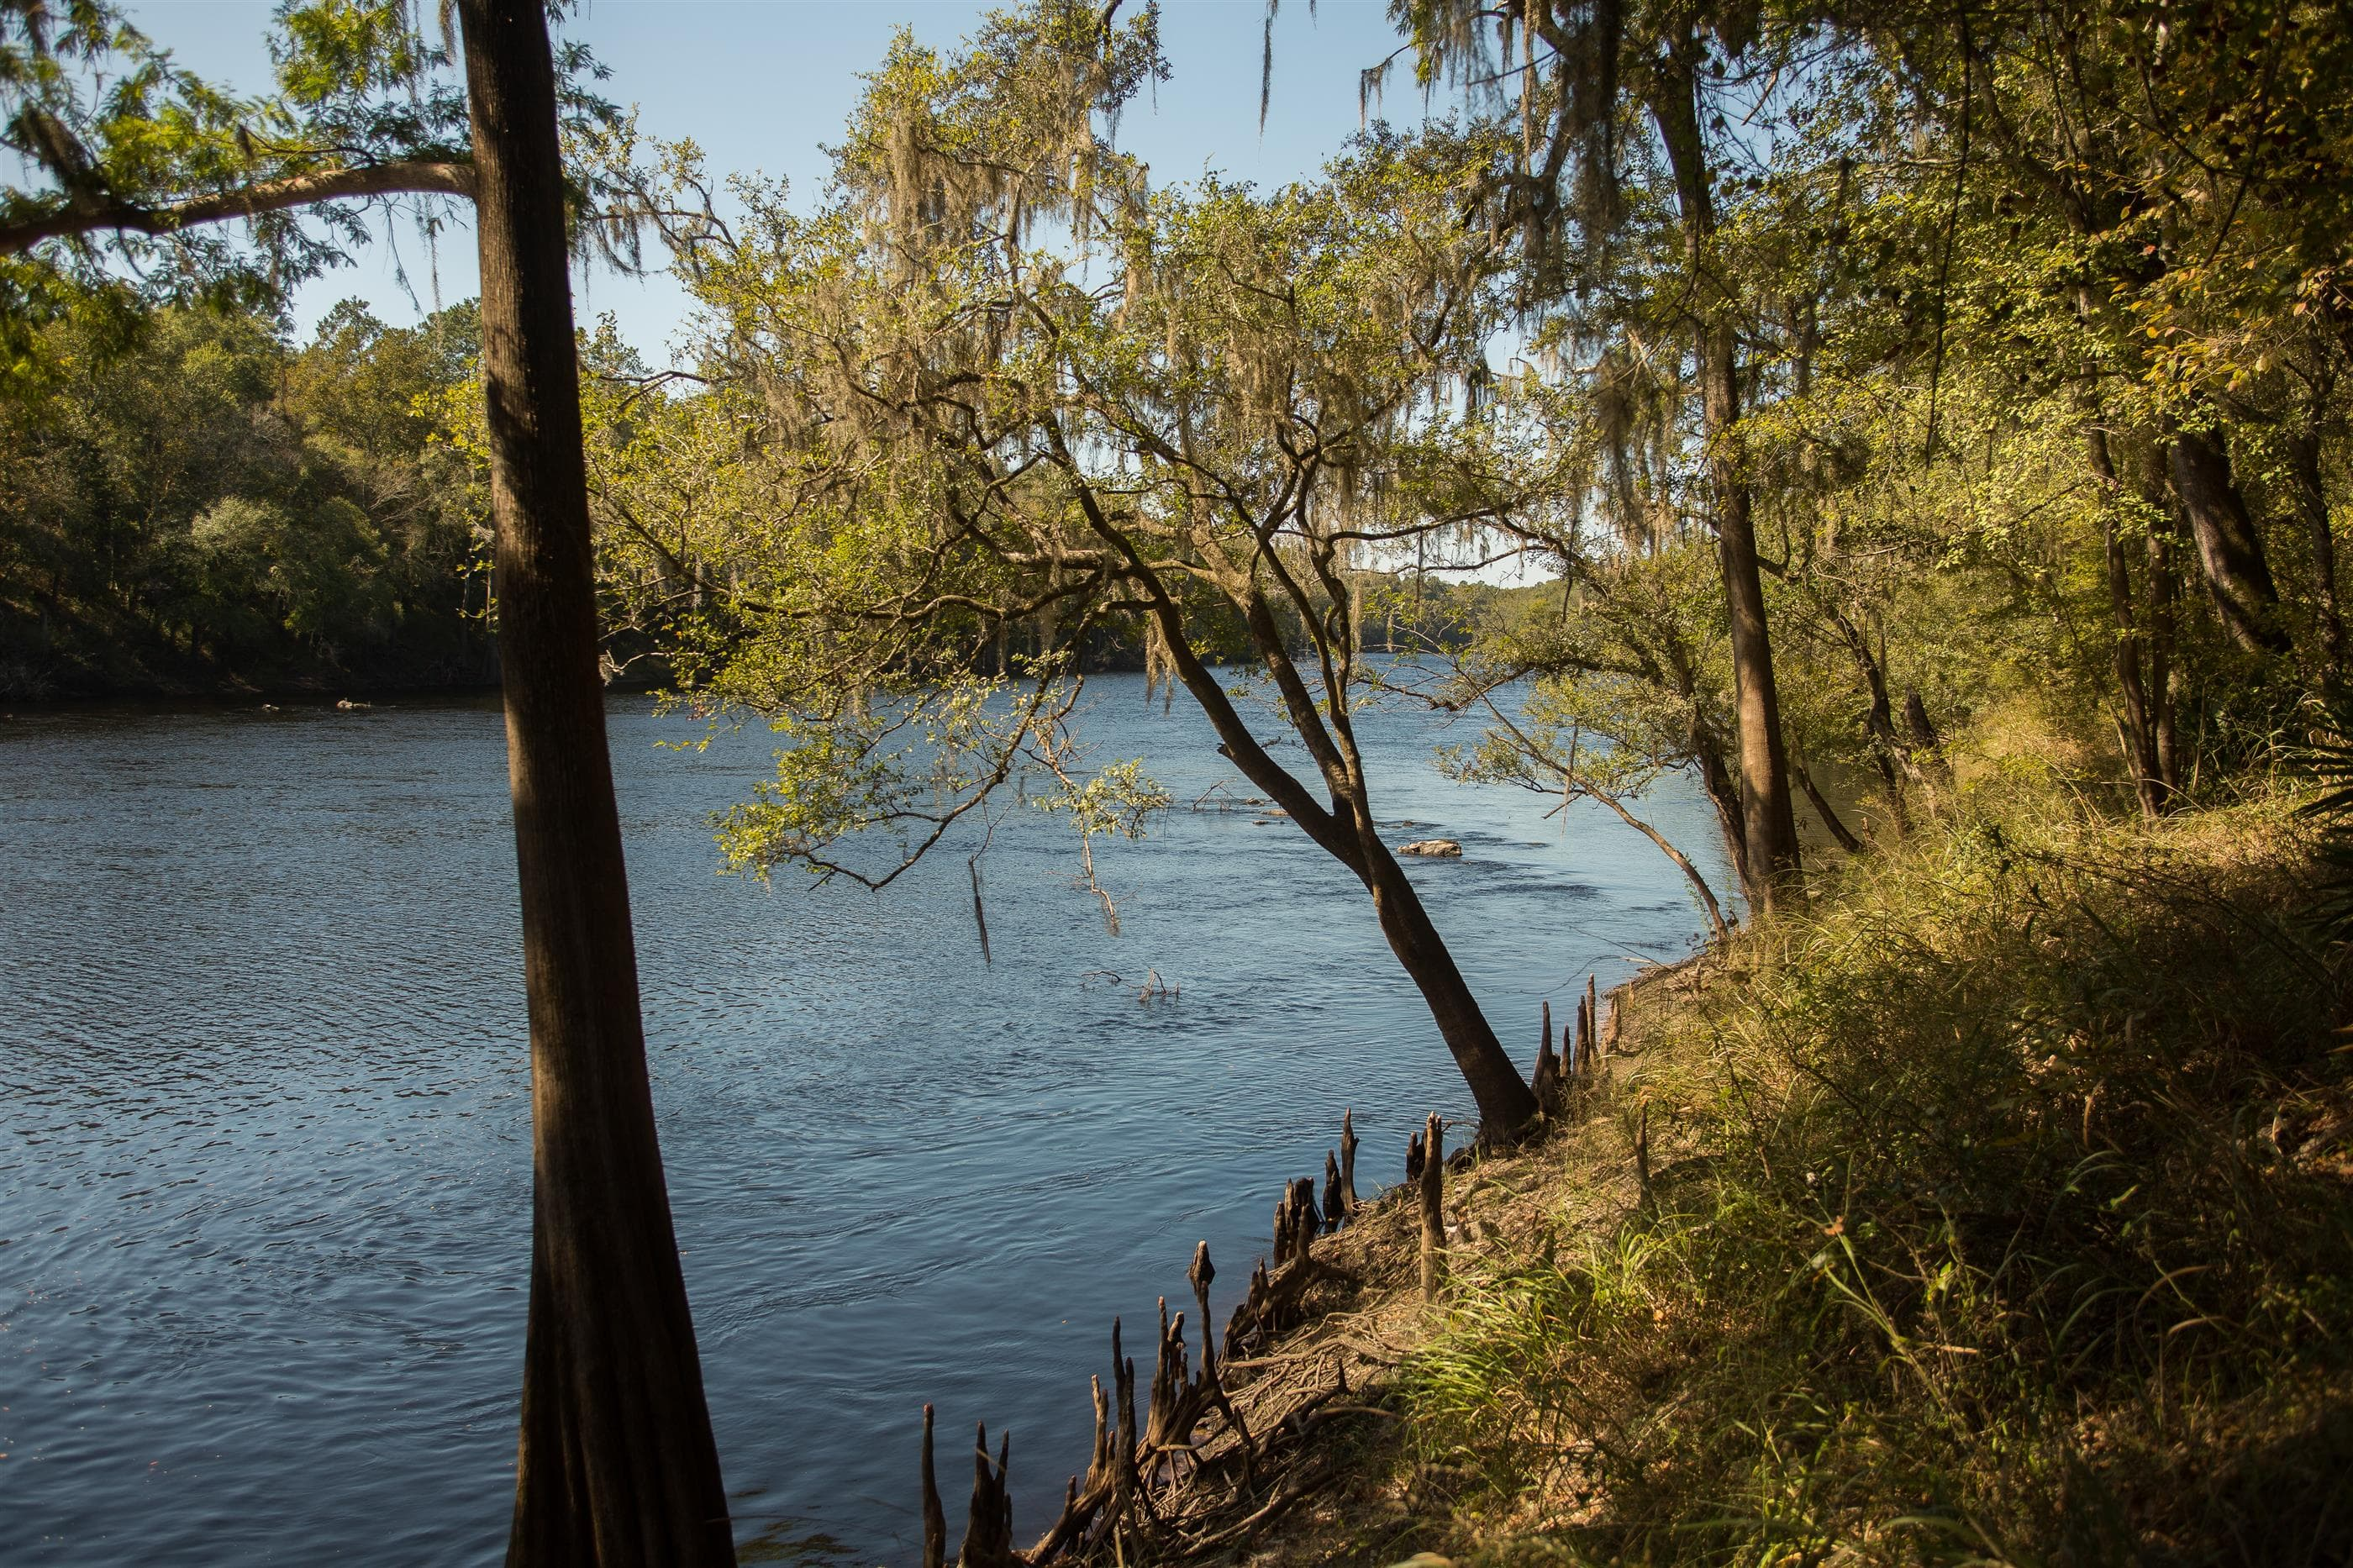 Suwannee River property and shoals during fall